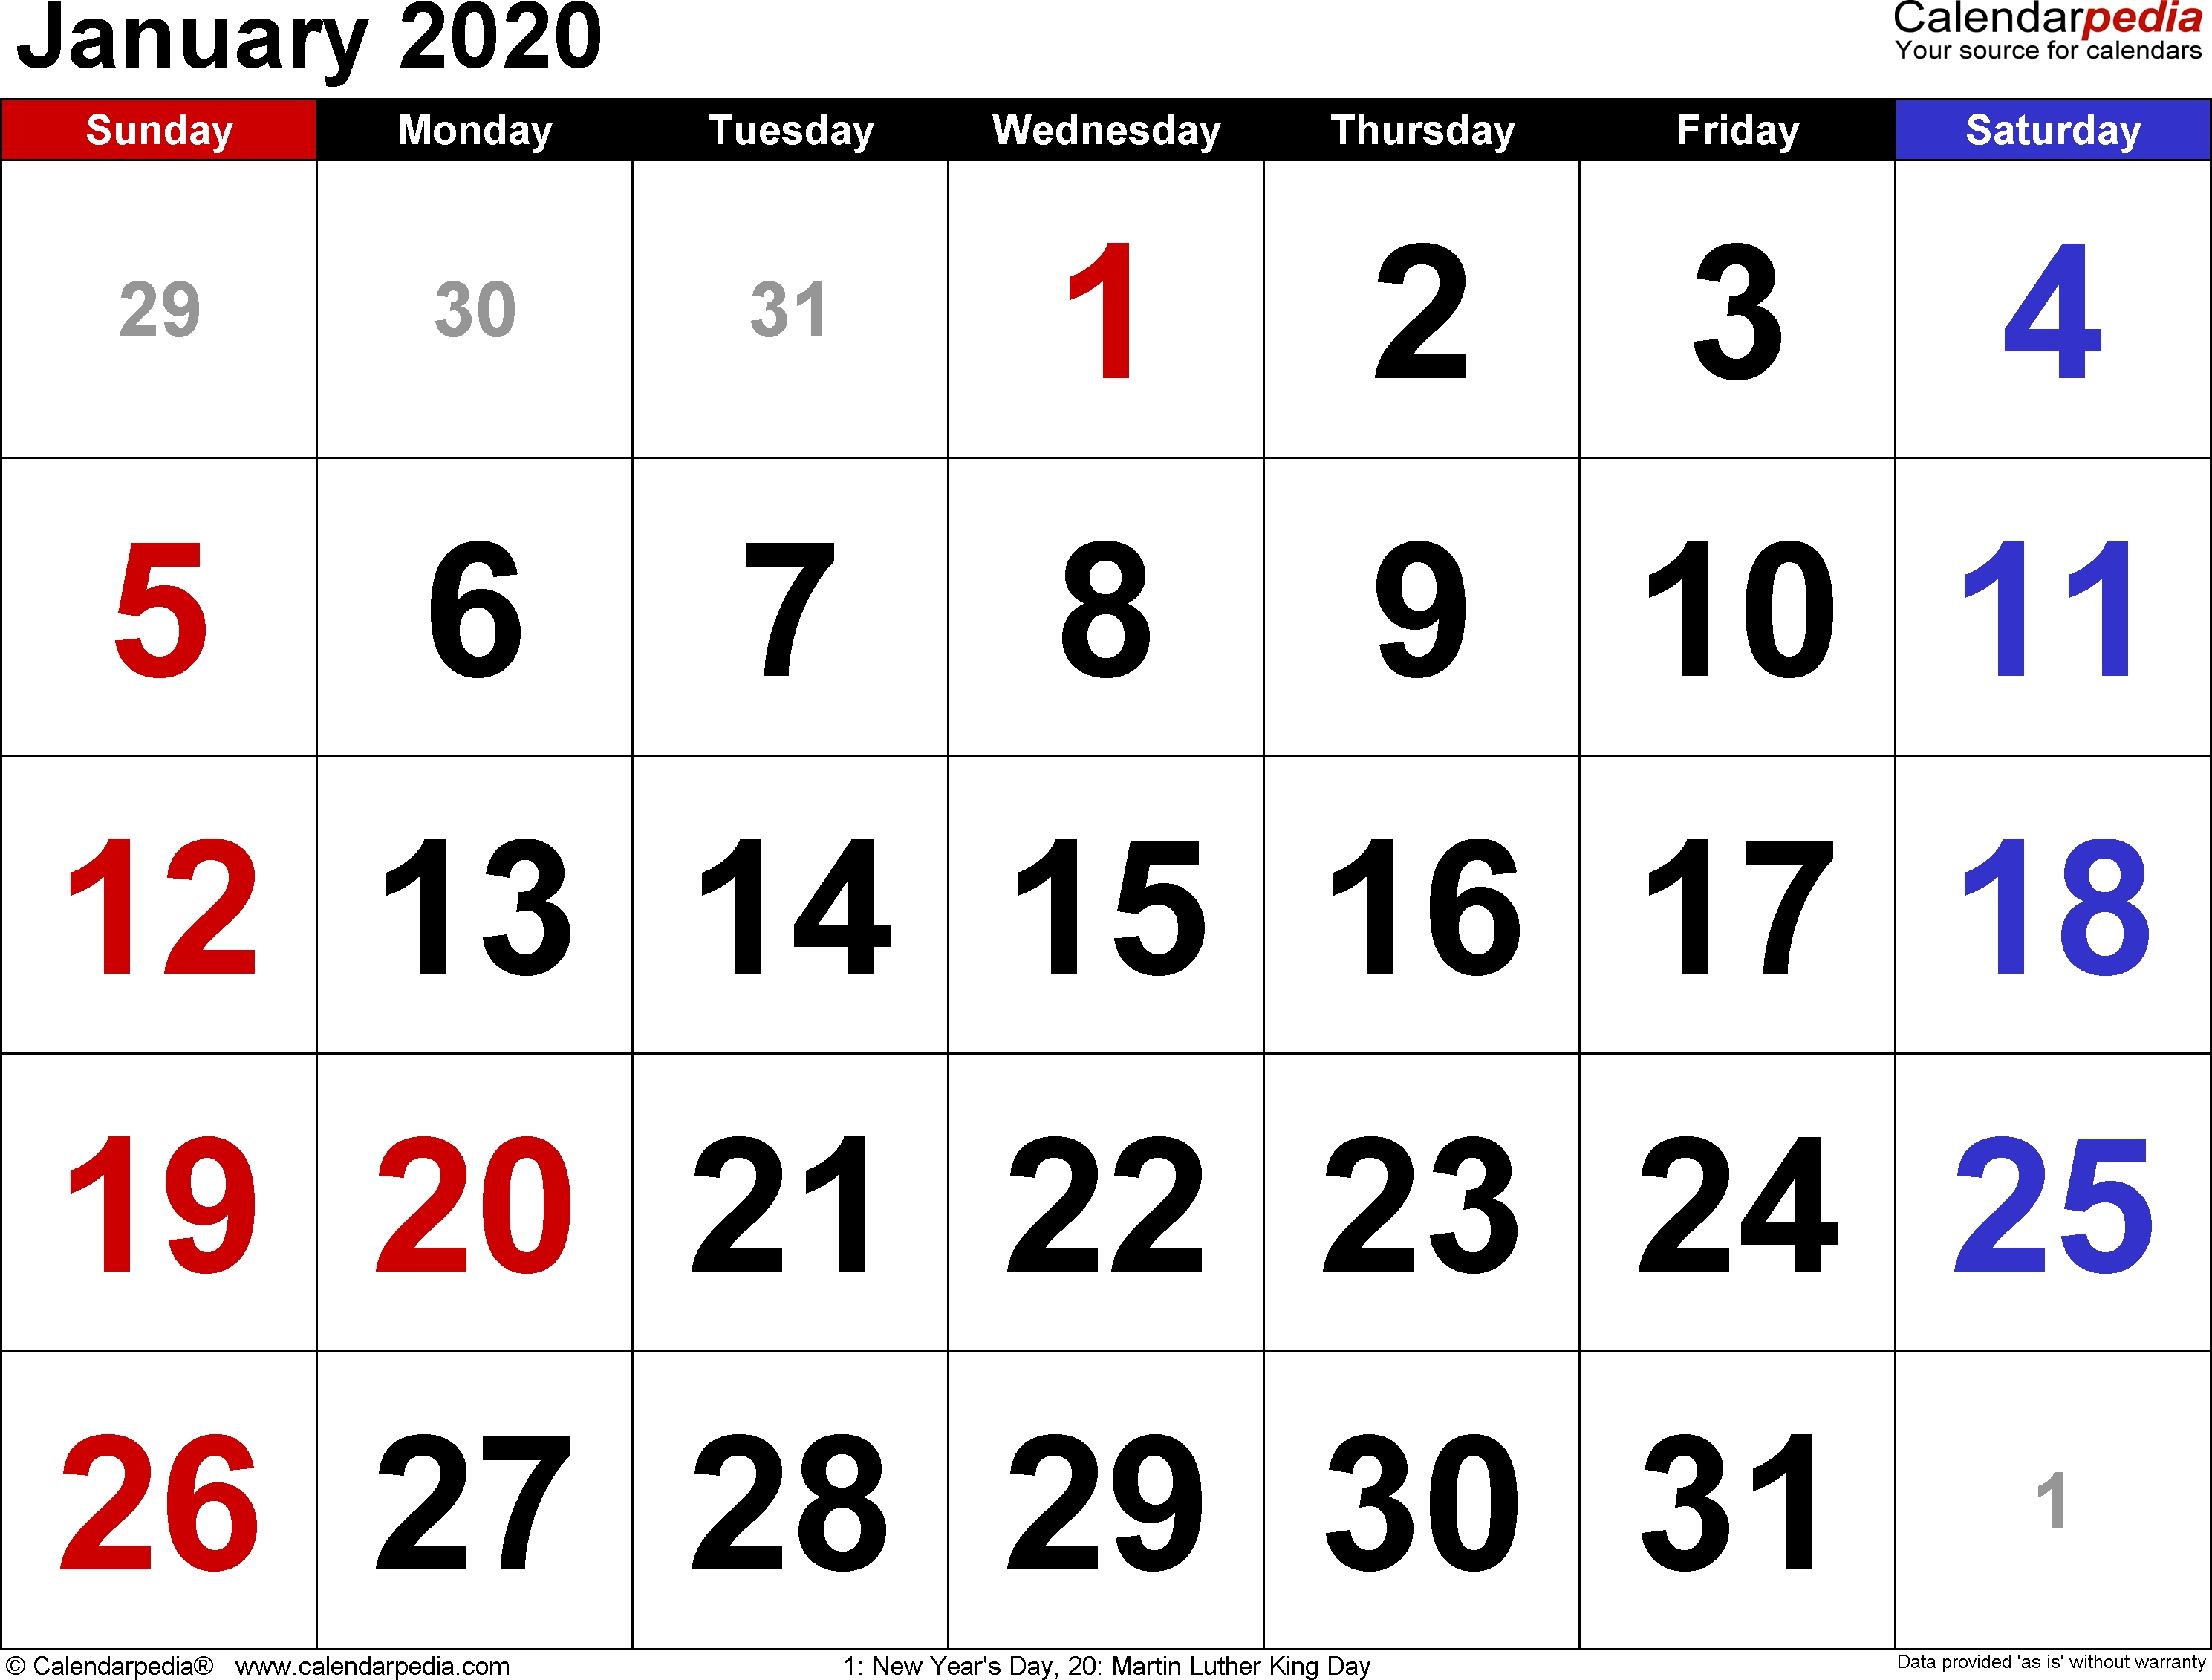 January 2020 Calendars For Word, Excel & Pdf-January 2020 Daily Calendar